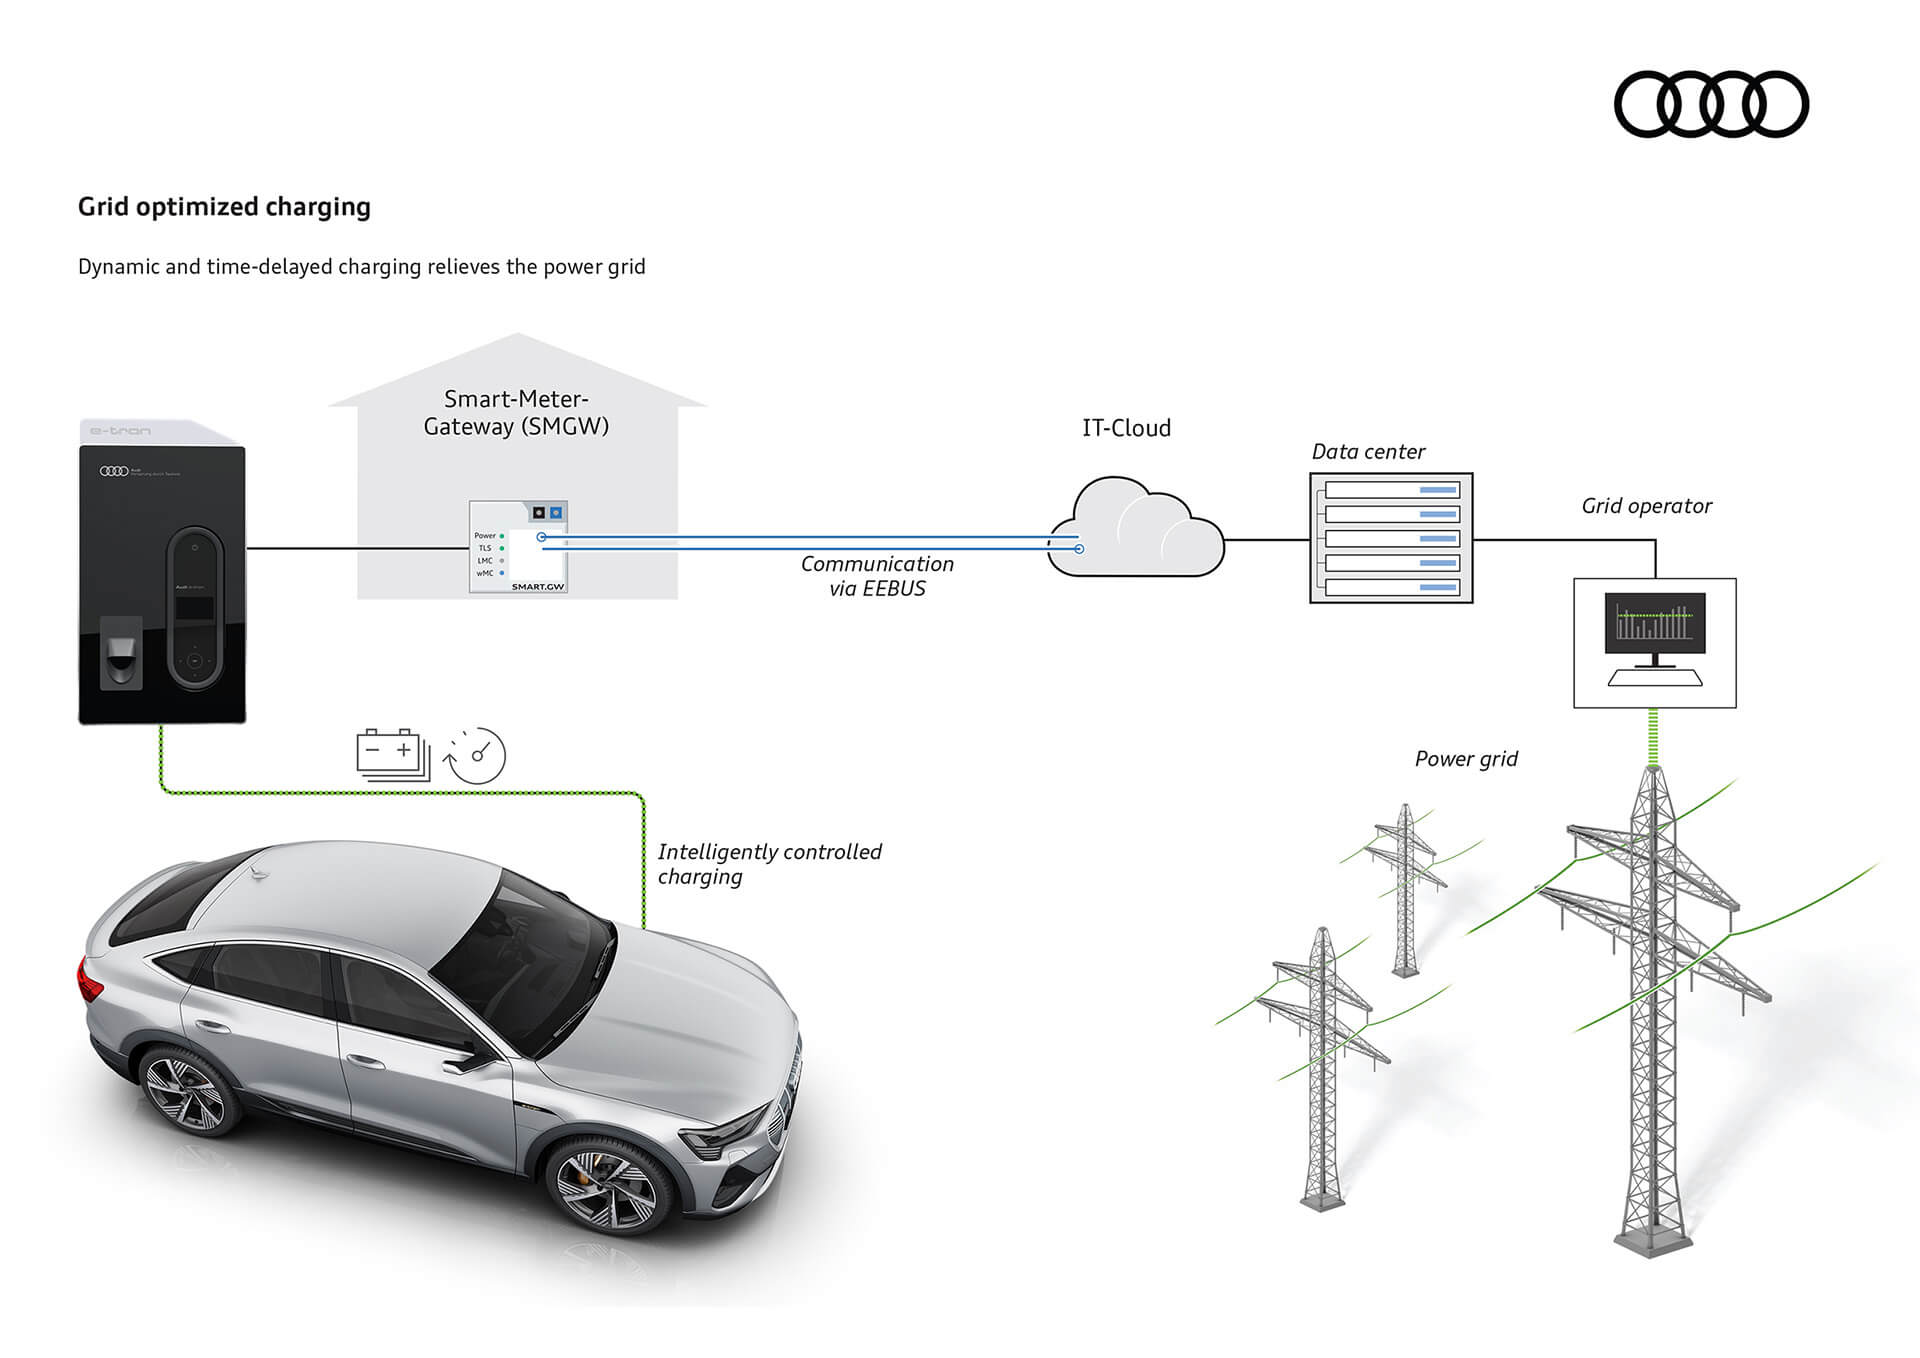 Audi e-tron grid optimized charging